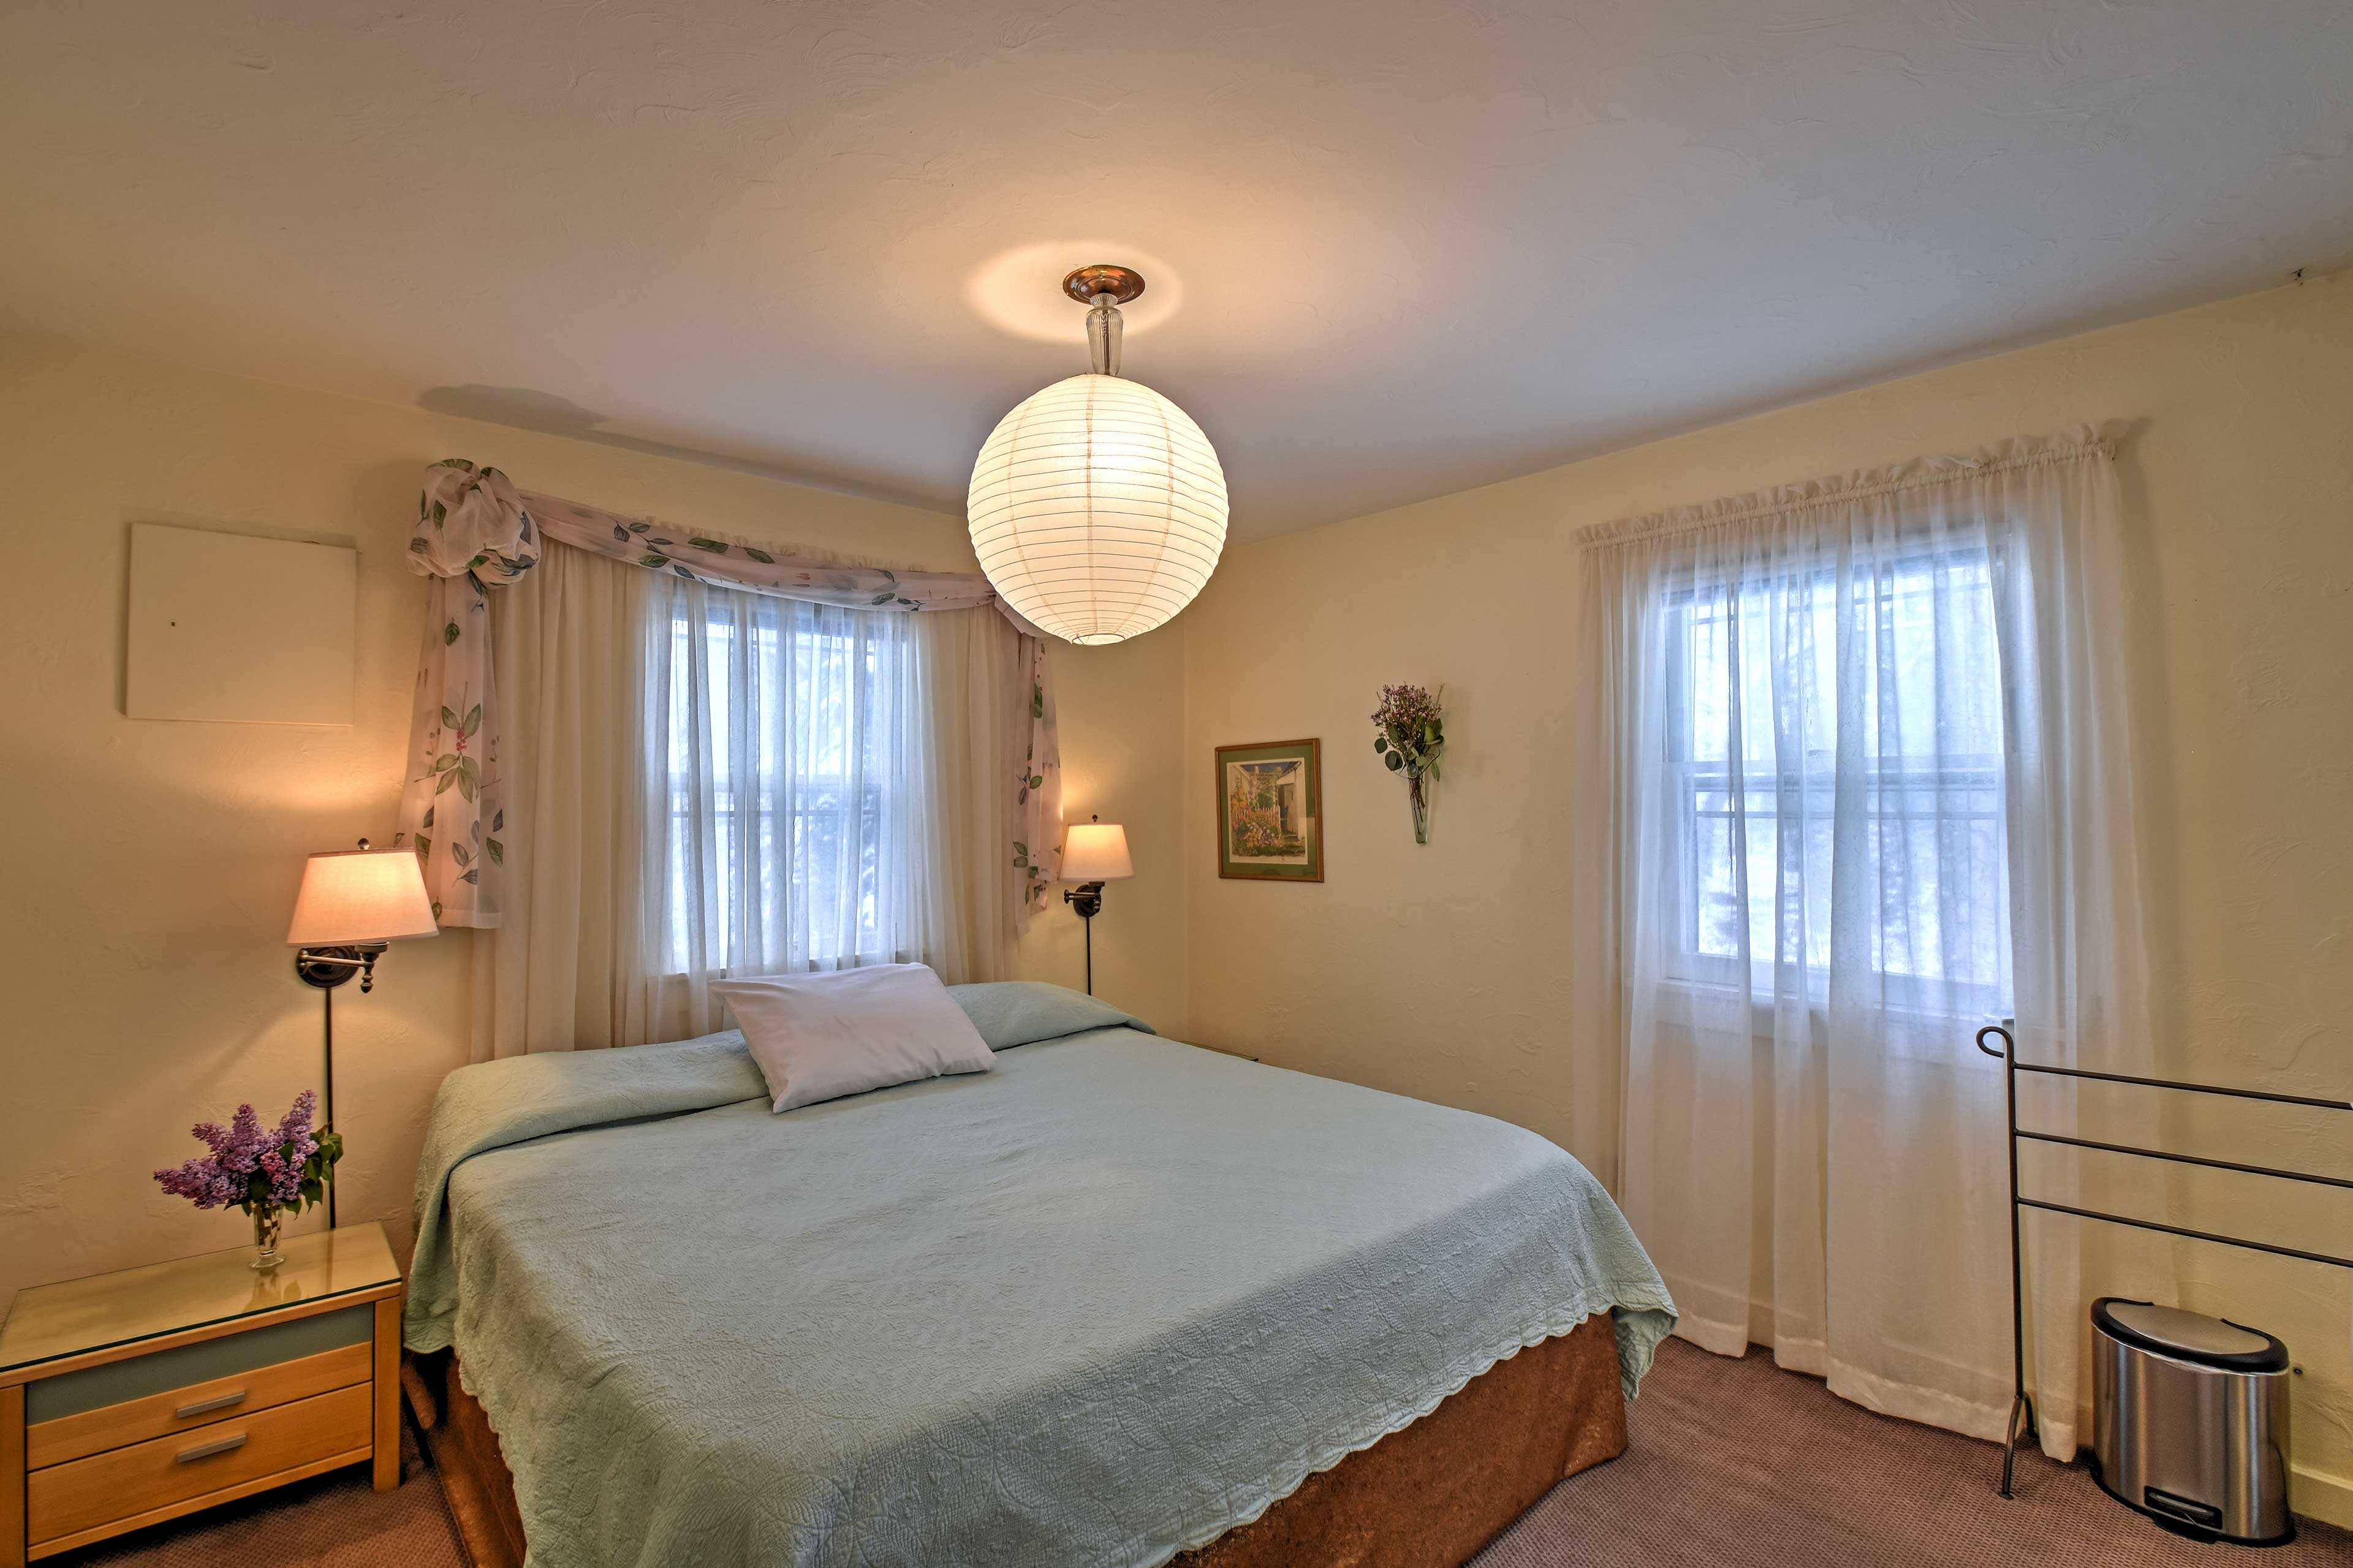 The master bedroom features a king-sized bed with quality linens.